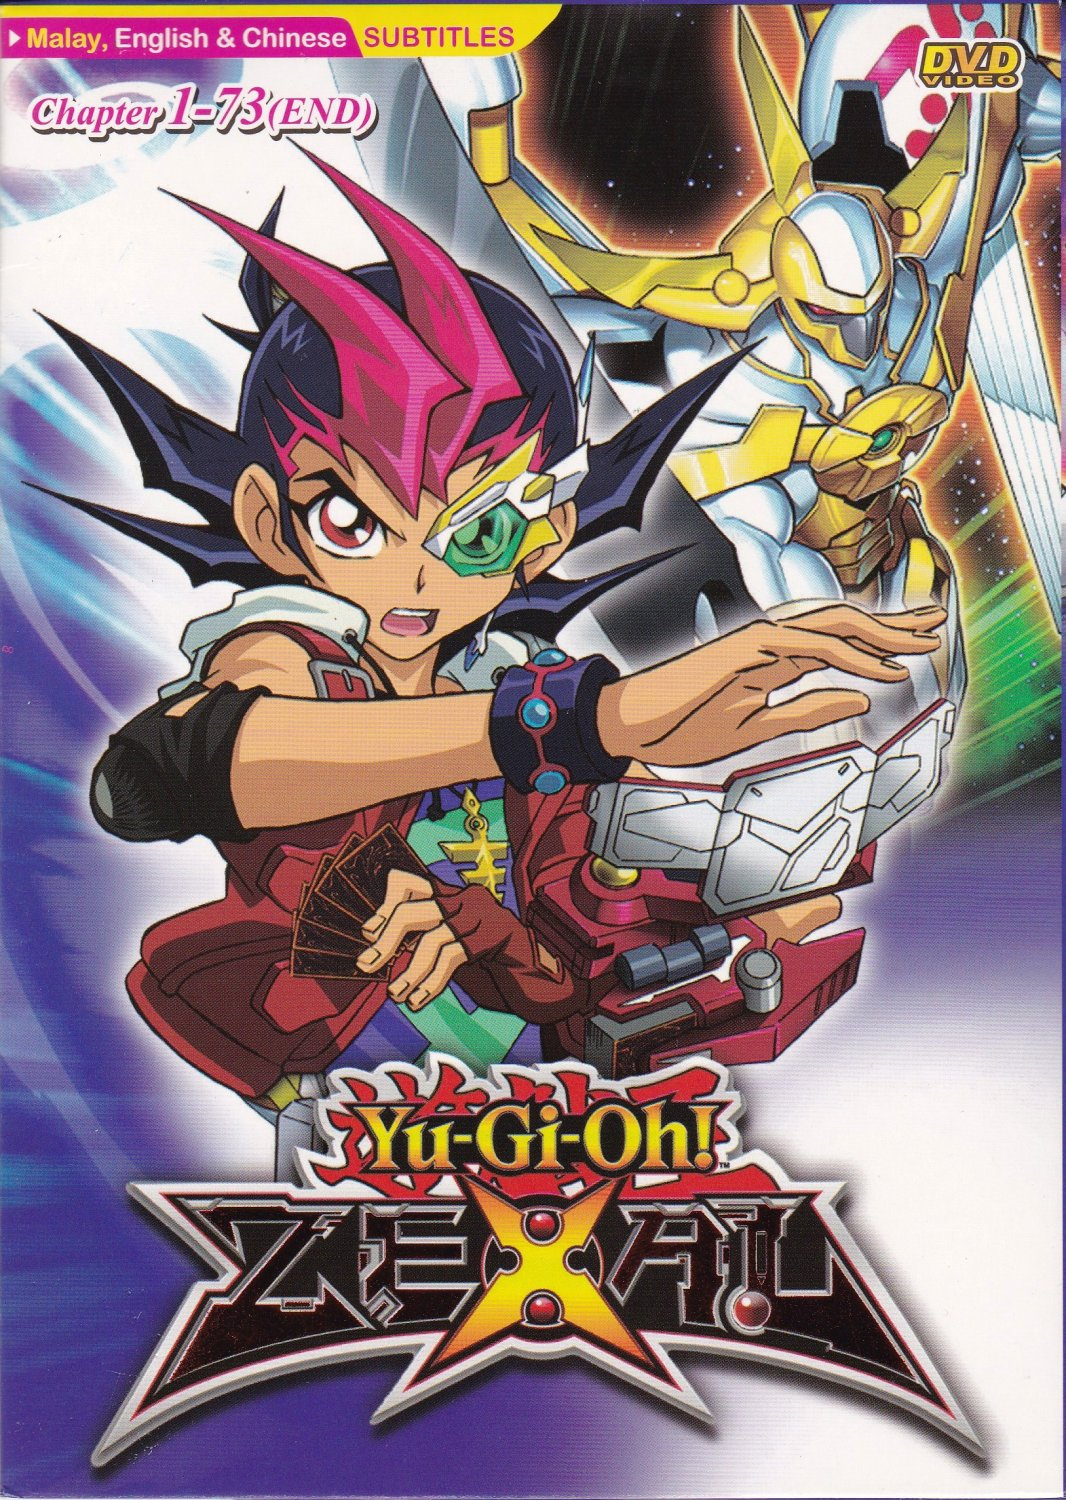 Dvd anime yu gi oh zexal vol 1 73 complete tv series region all free shipping